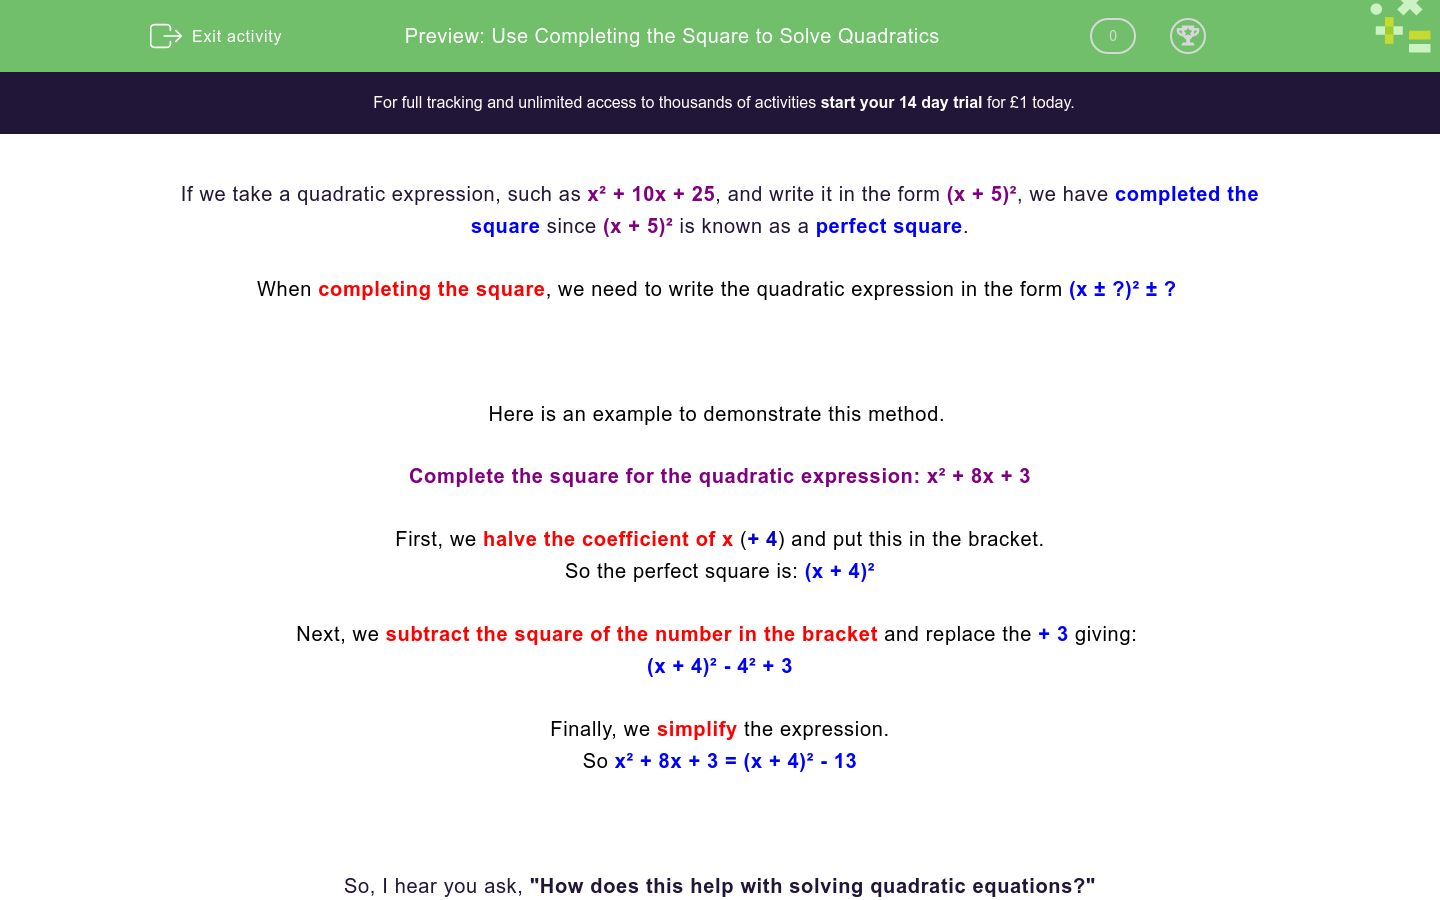 'Use Completing the Square to Solve Quadratics' worksheet